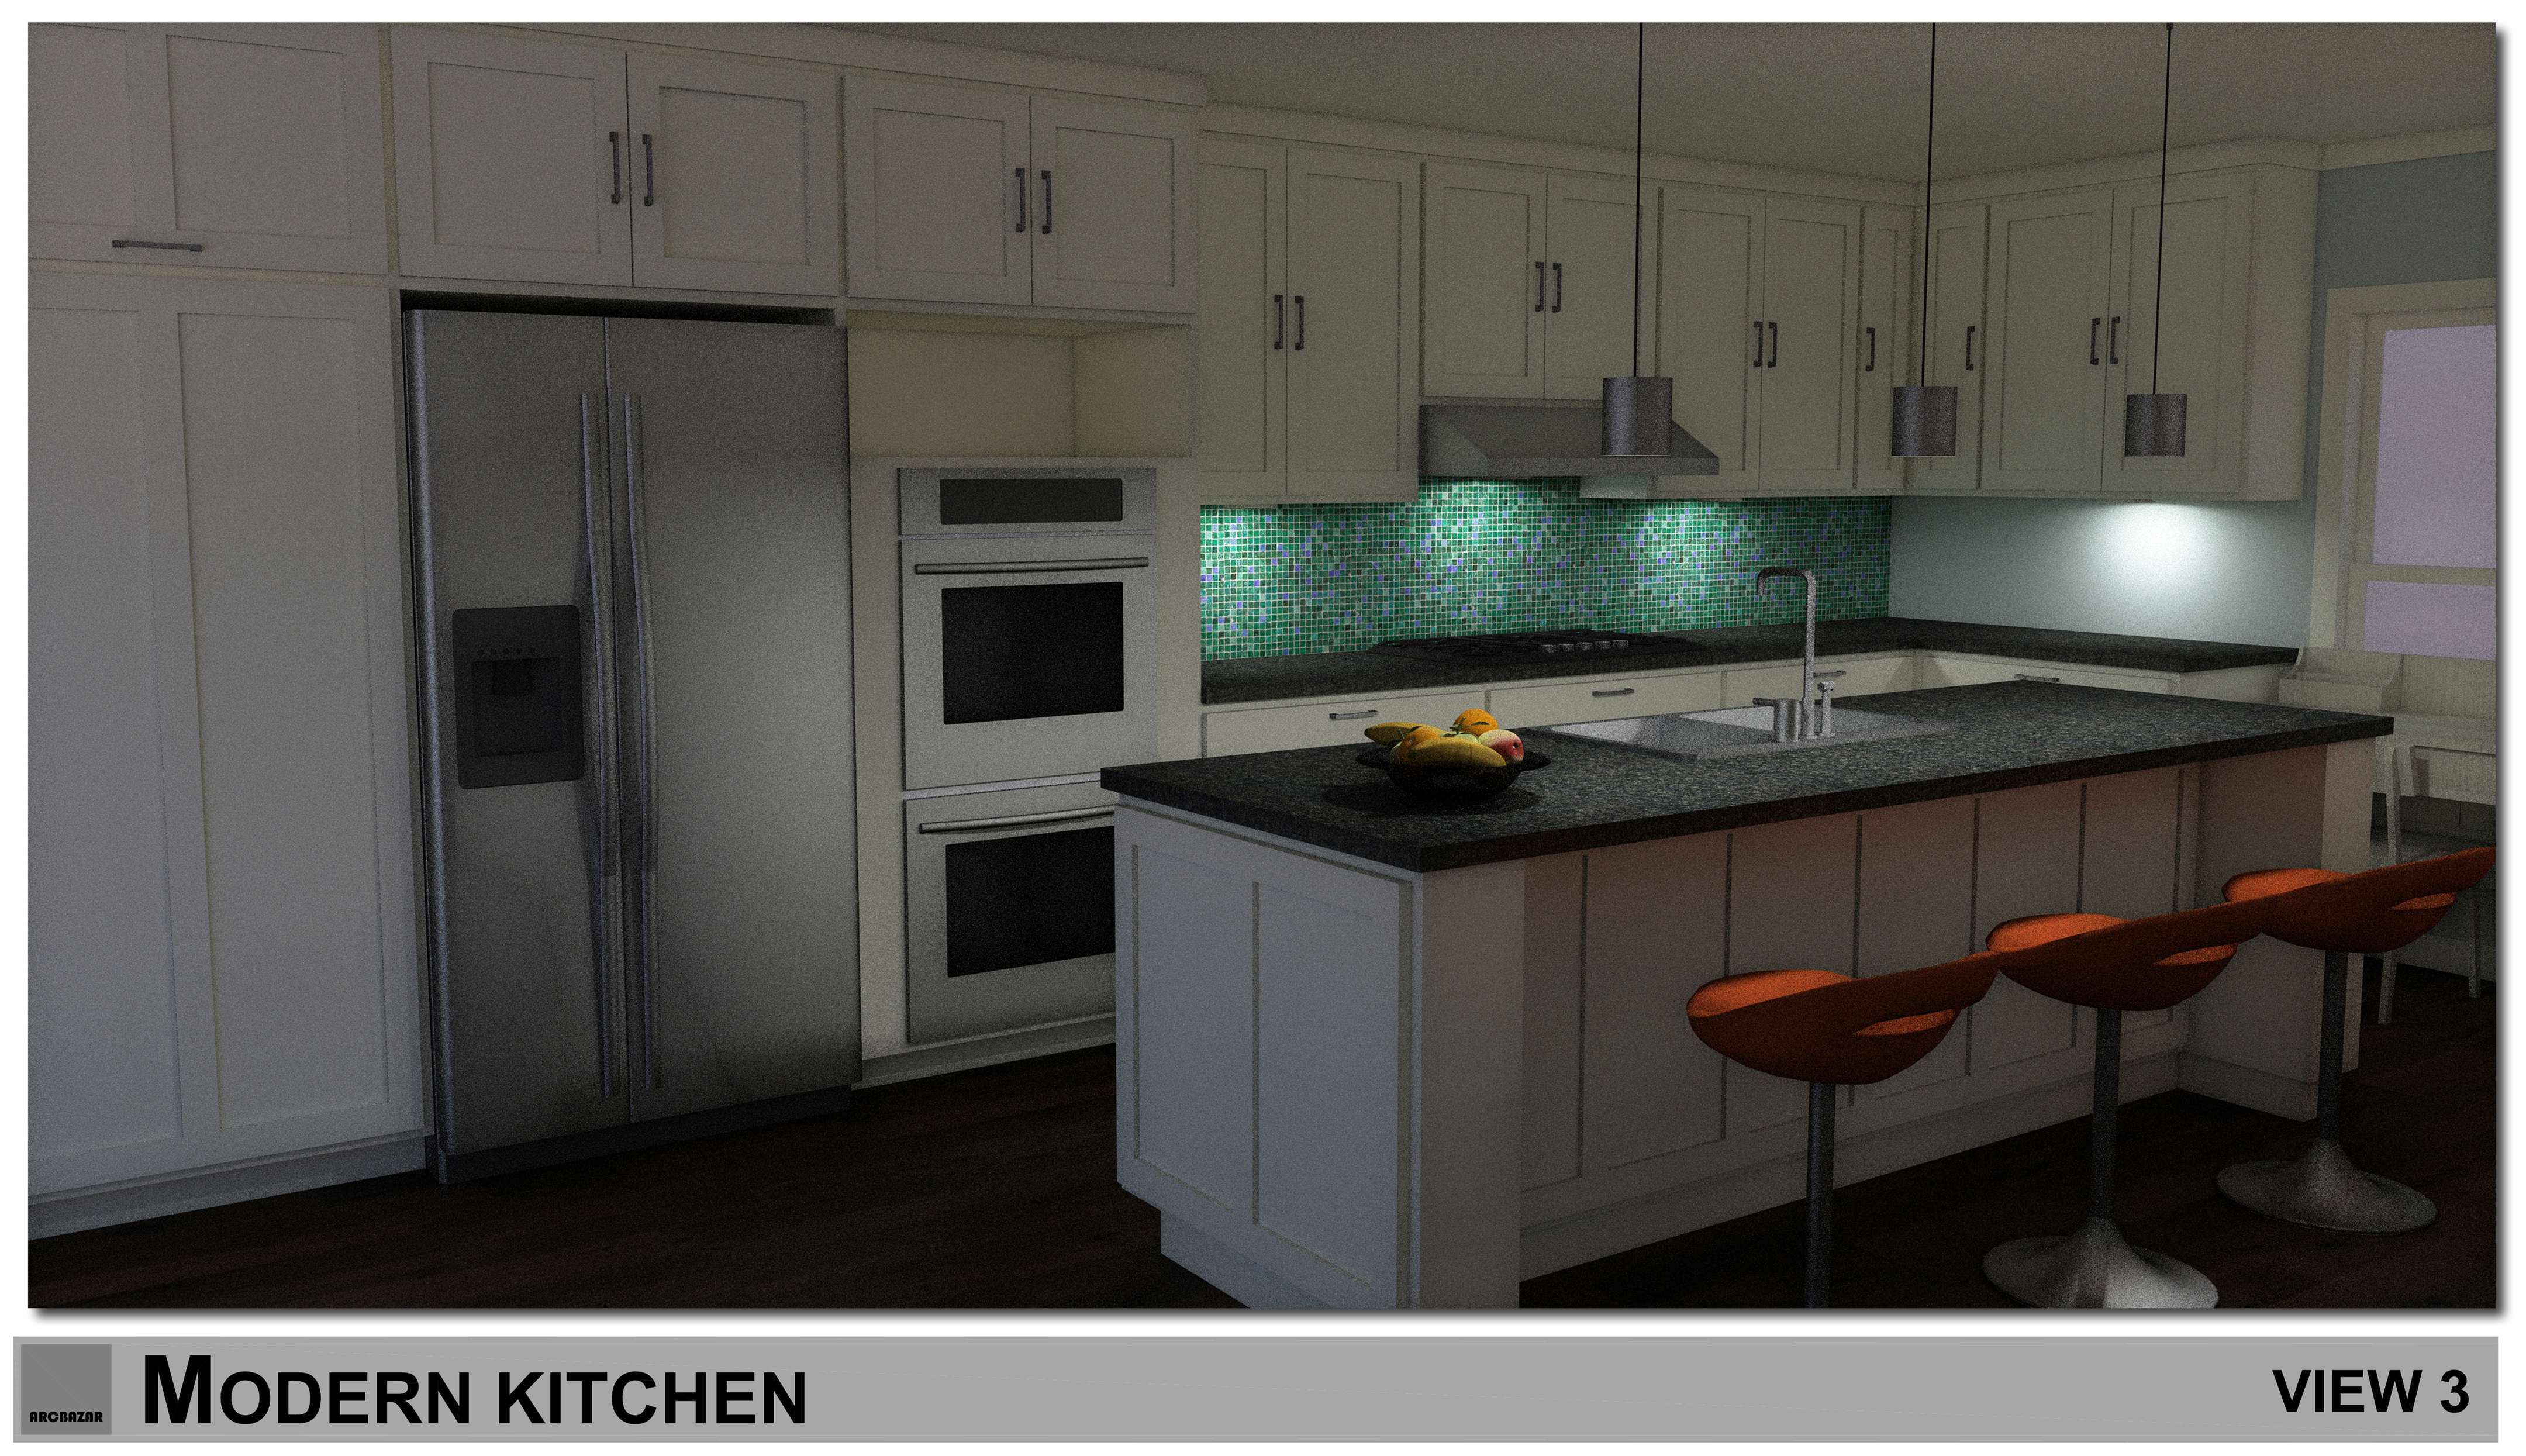 Viewdesignerproject Projectkitchen Design Designed By Ziese Hsieh Modern